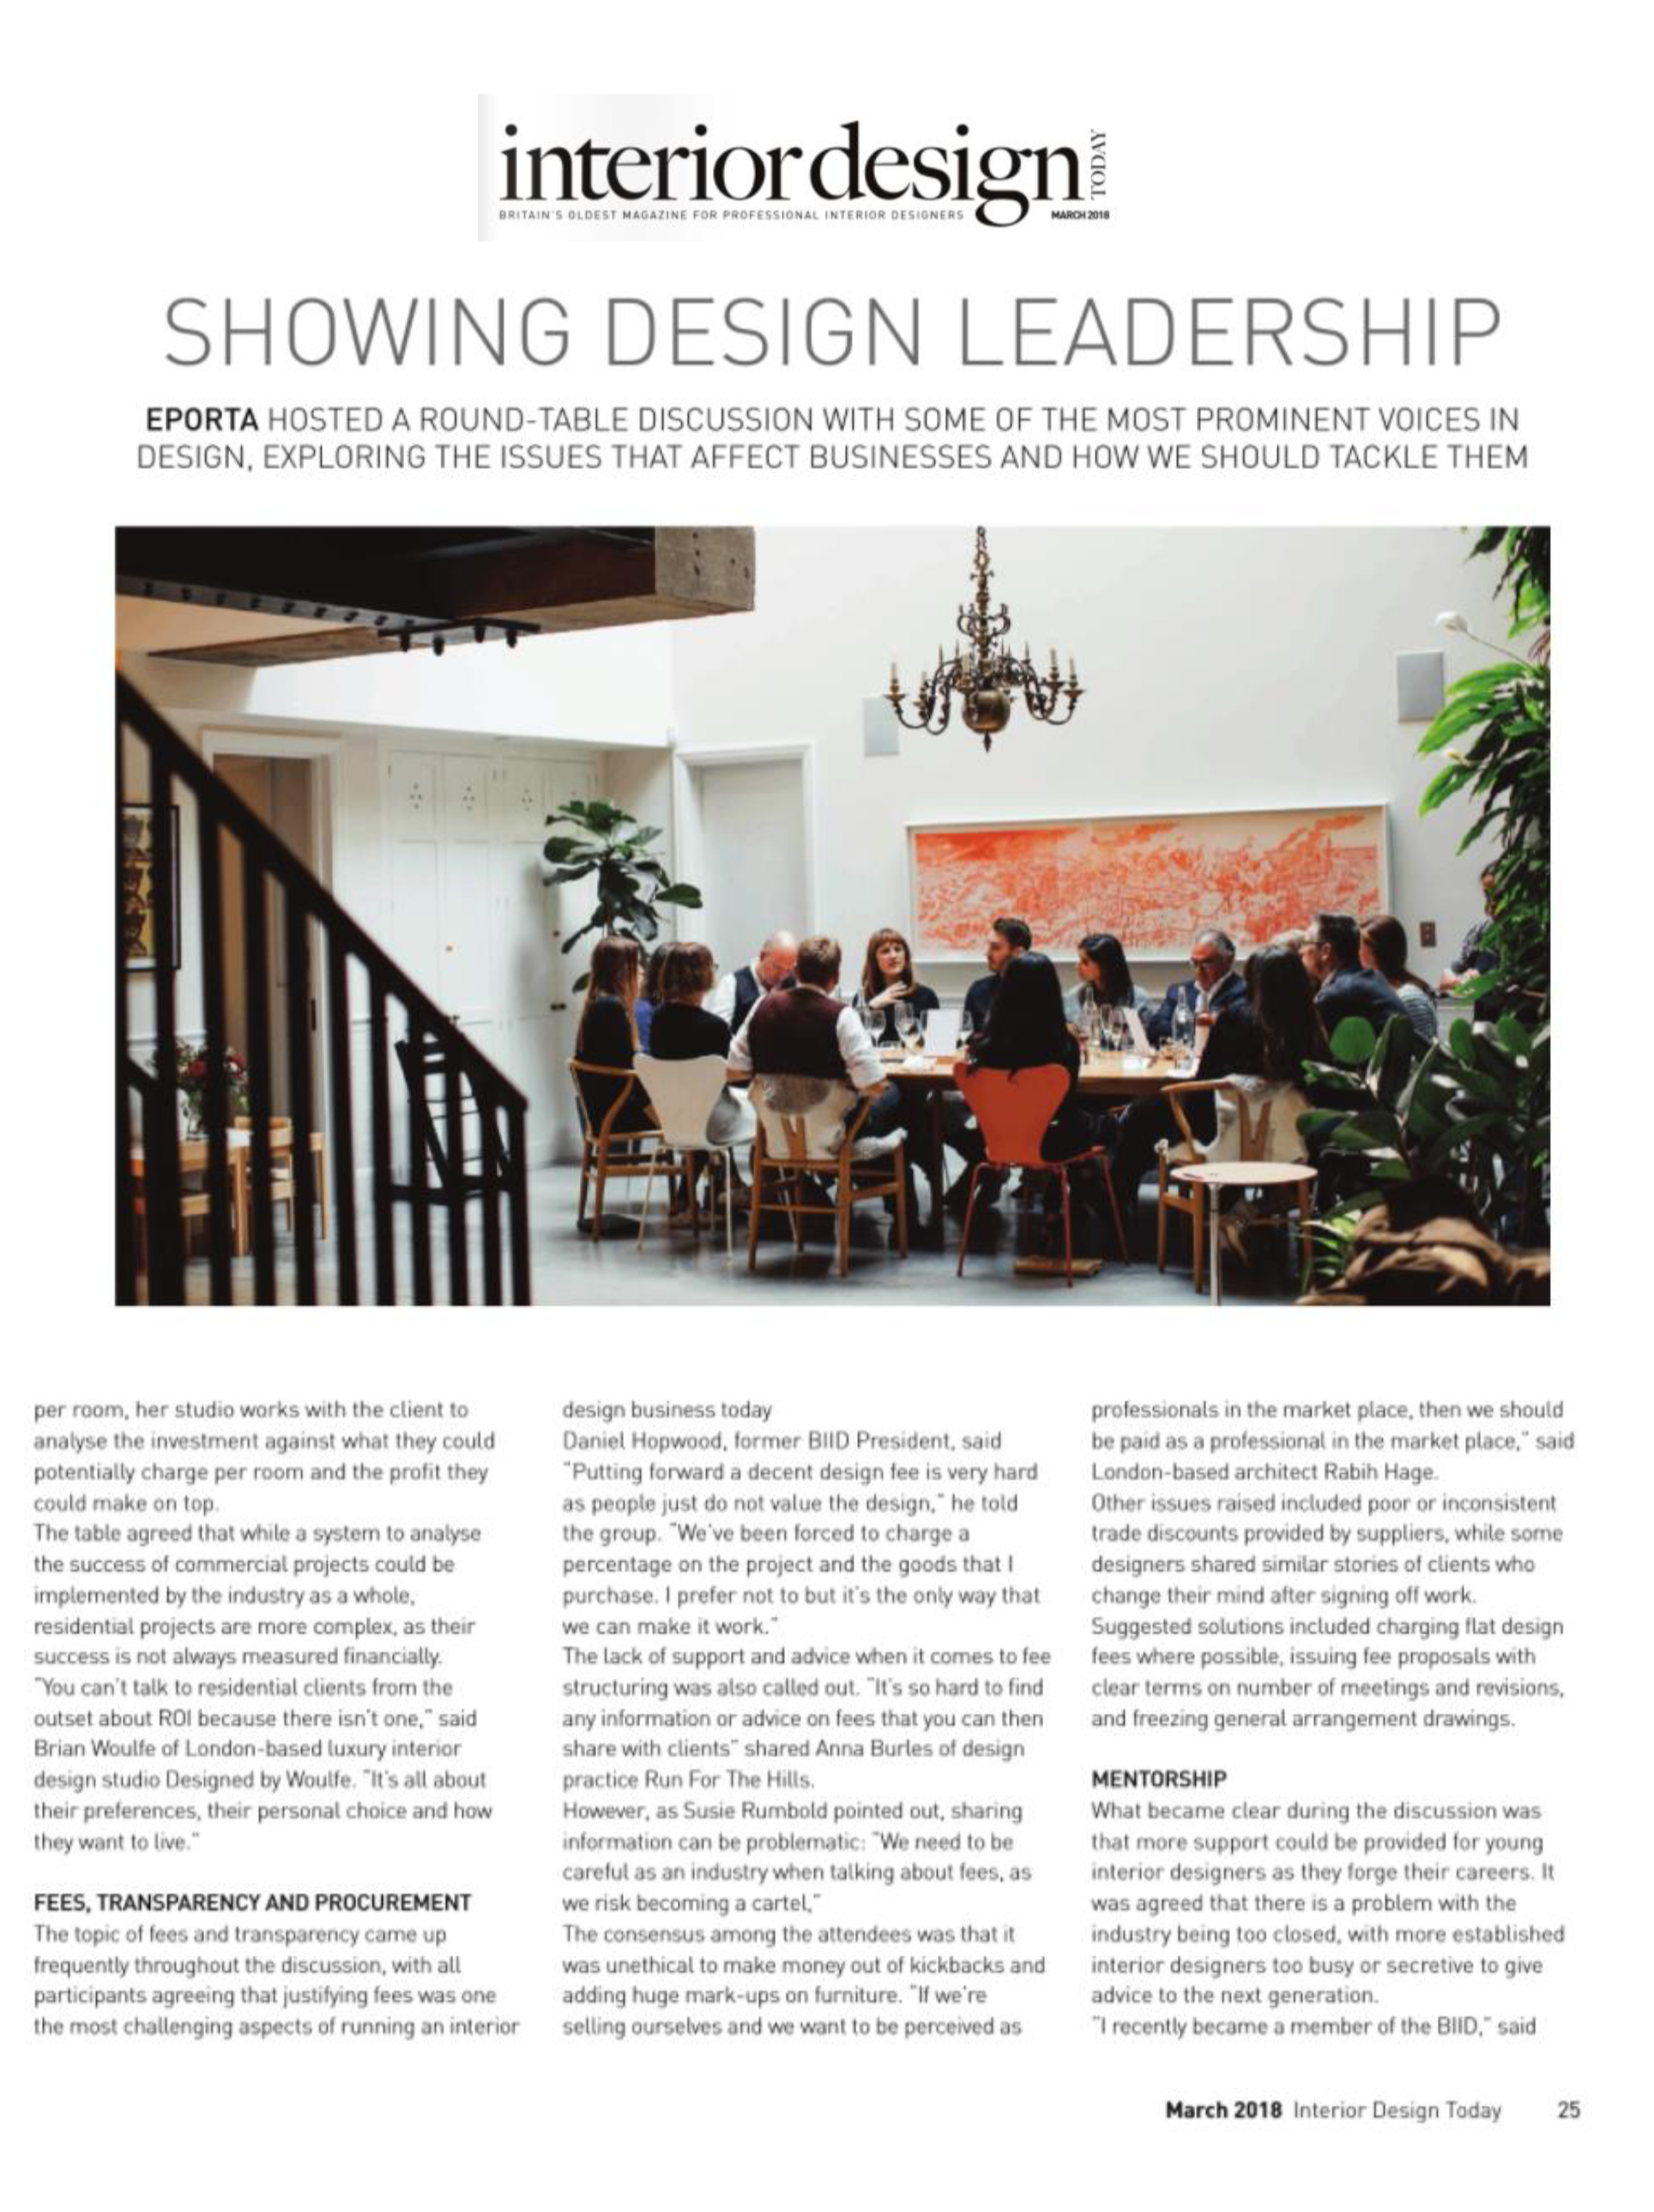 Designed by Woulfe, Interior Design Today Magazine, Eporta Showing Leadership